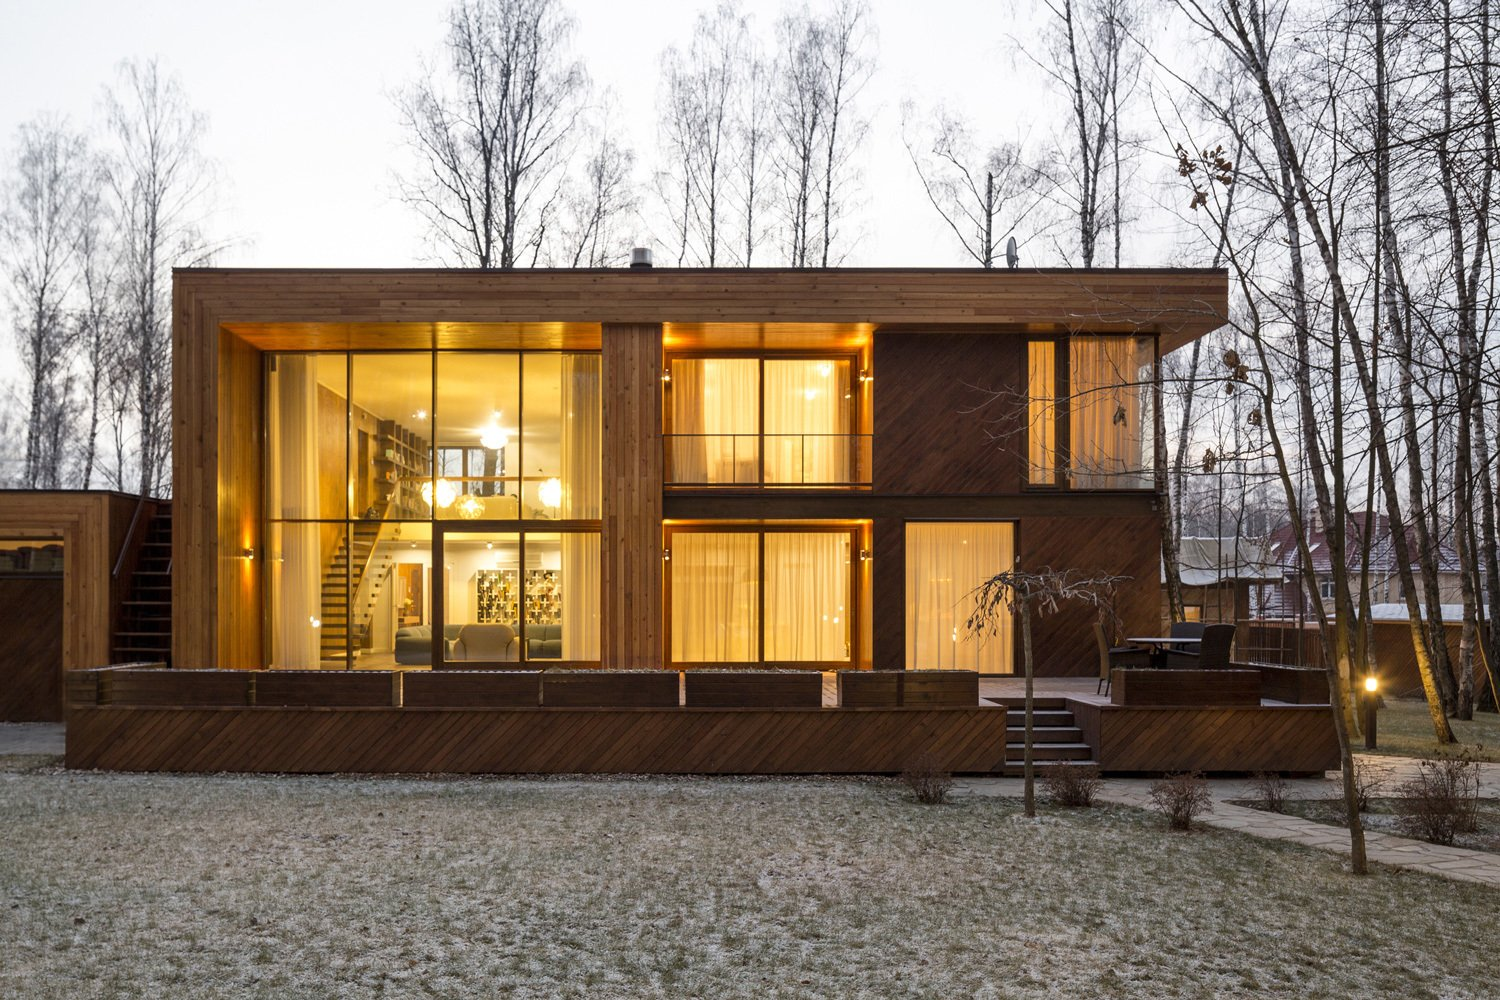 The house may be large at 5,382 square feet, but its extensive glazing makes it appear weightless.  House in Moscow by Laura C. Mallonee